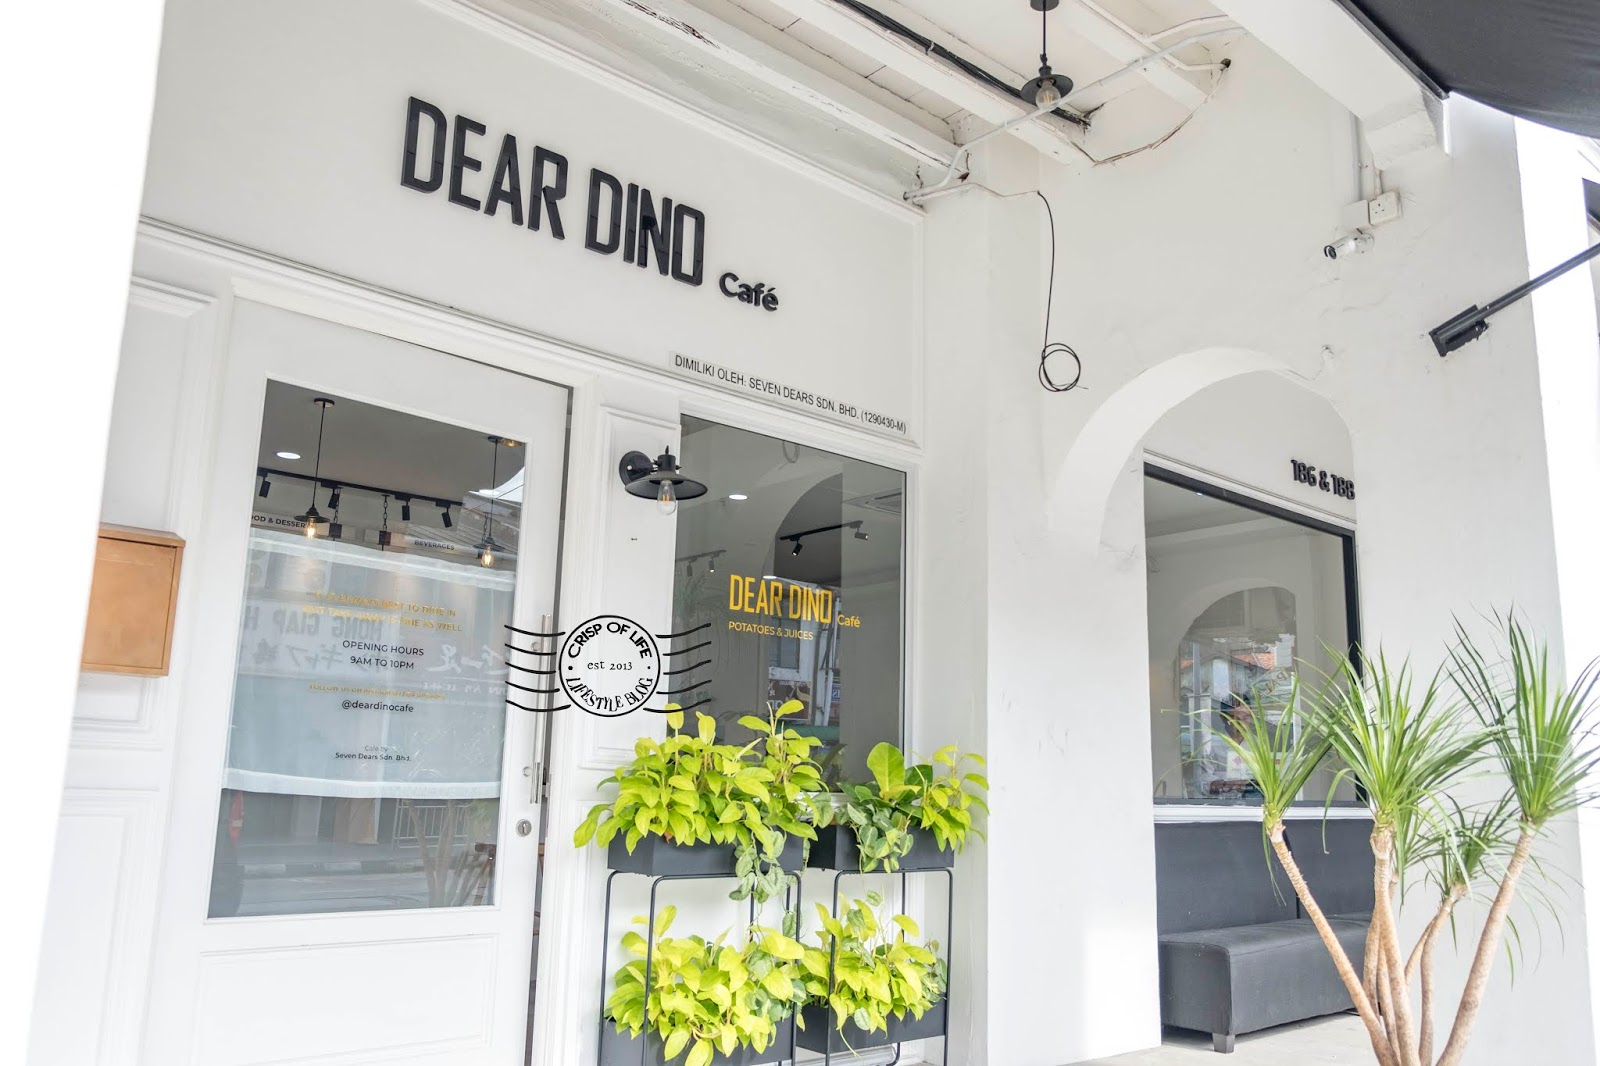 Dear Dino Cafe @ Penang Road, Georgetown, Penang